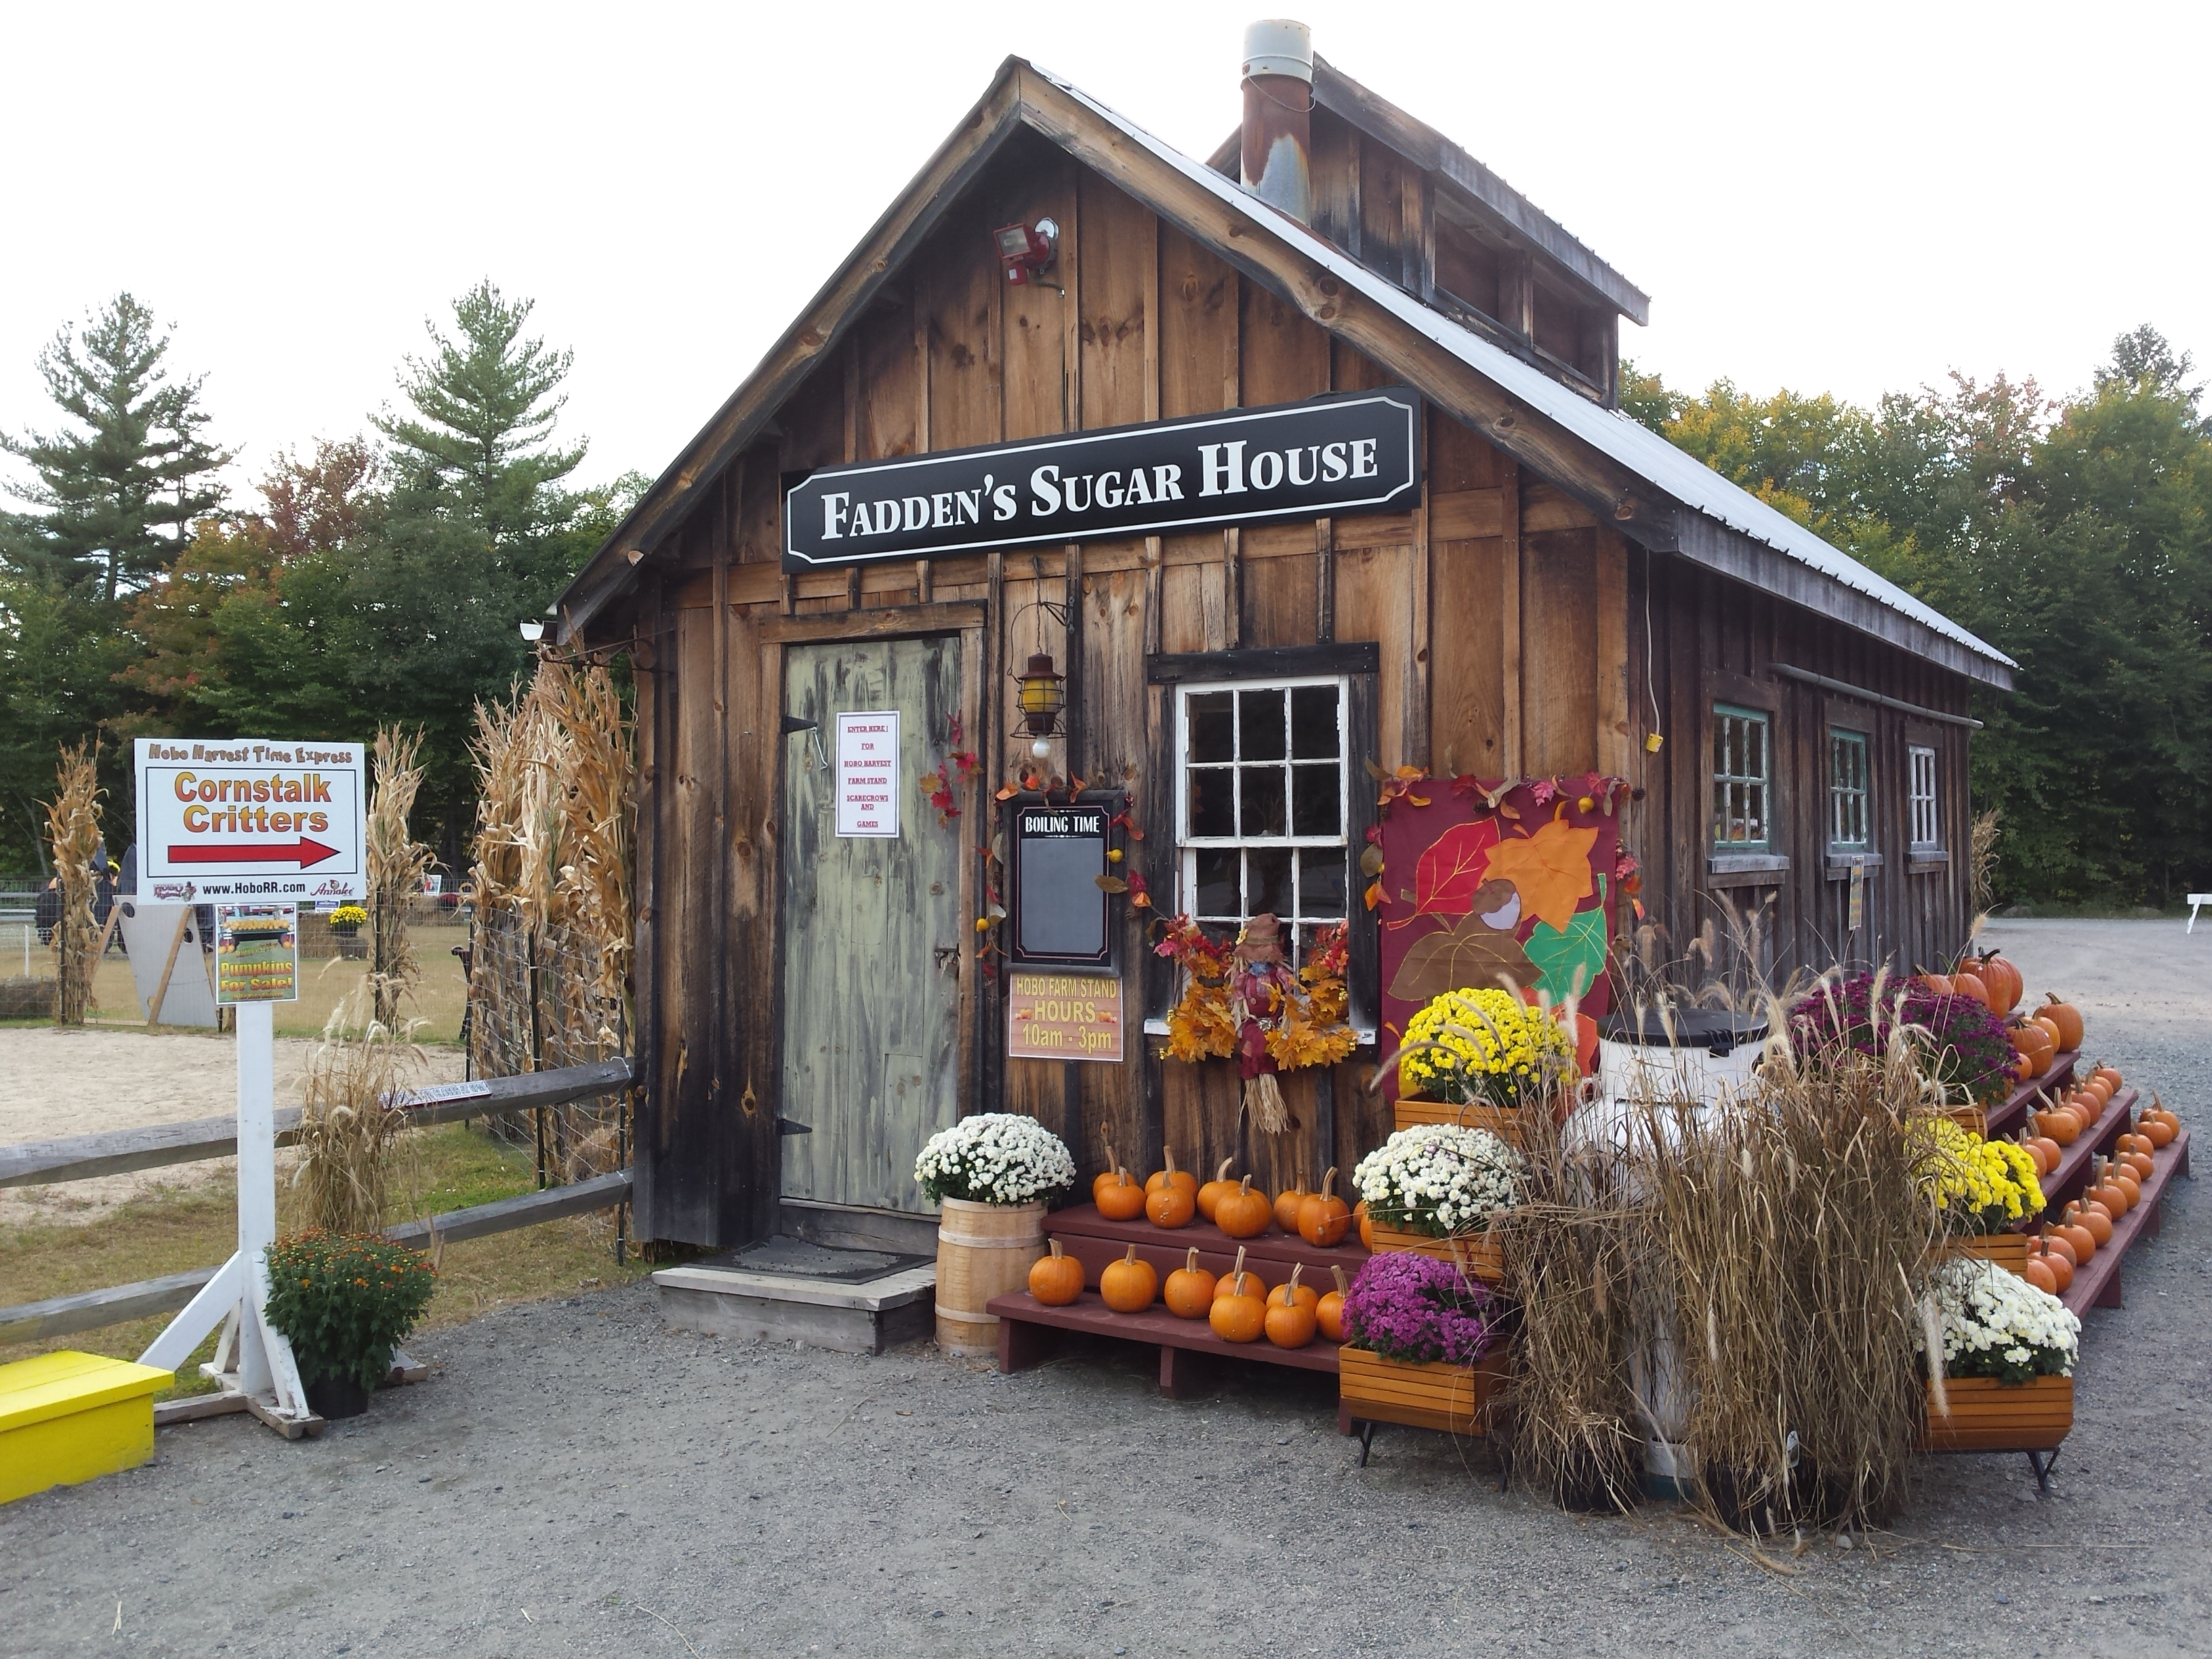 Hobo Harvest Time Express - New Hampshire's Classic Fall Foliage Experience! We operate daily from mid-September through mid-October. Be sure to check out our Hobo Farm Stand and our now-famous